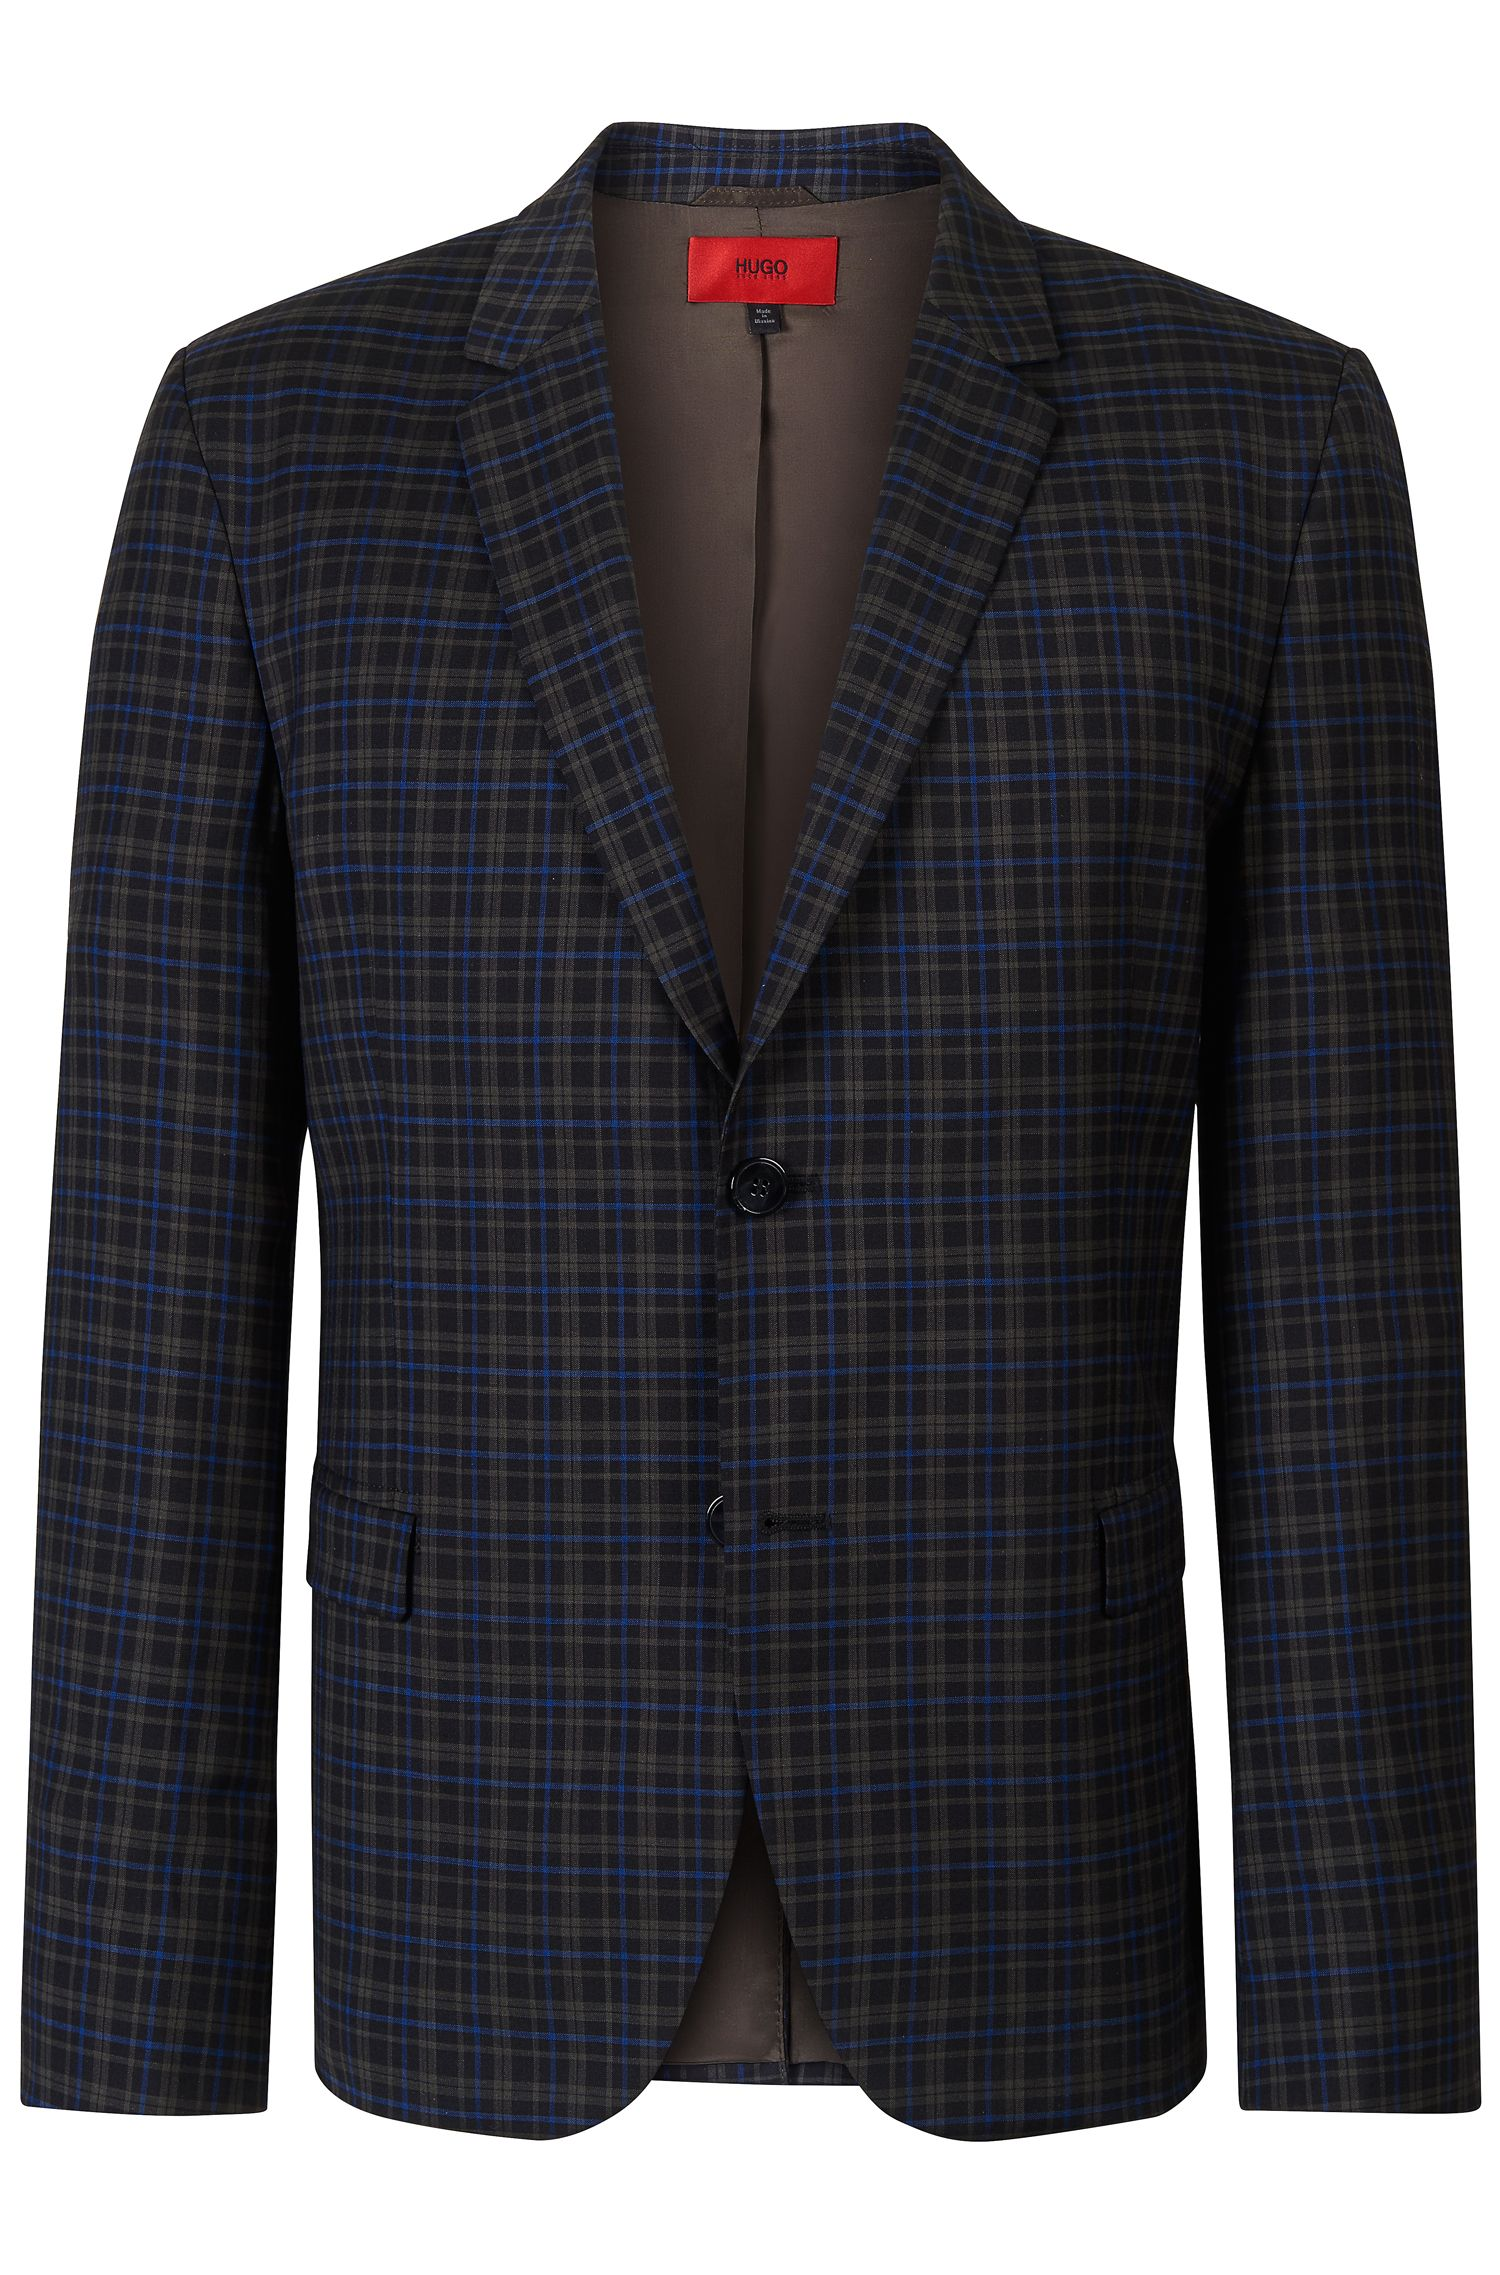 'Arelto' | Relaxed Fit, Virgin Wool Plaid Sport Coat